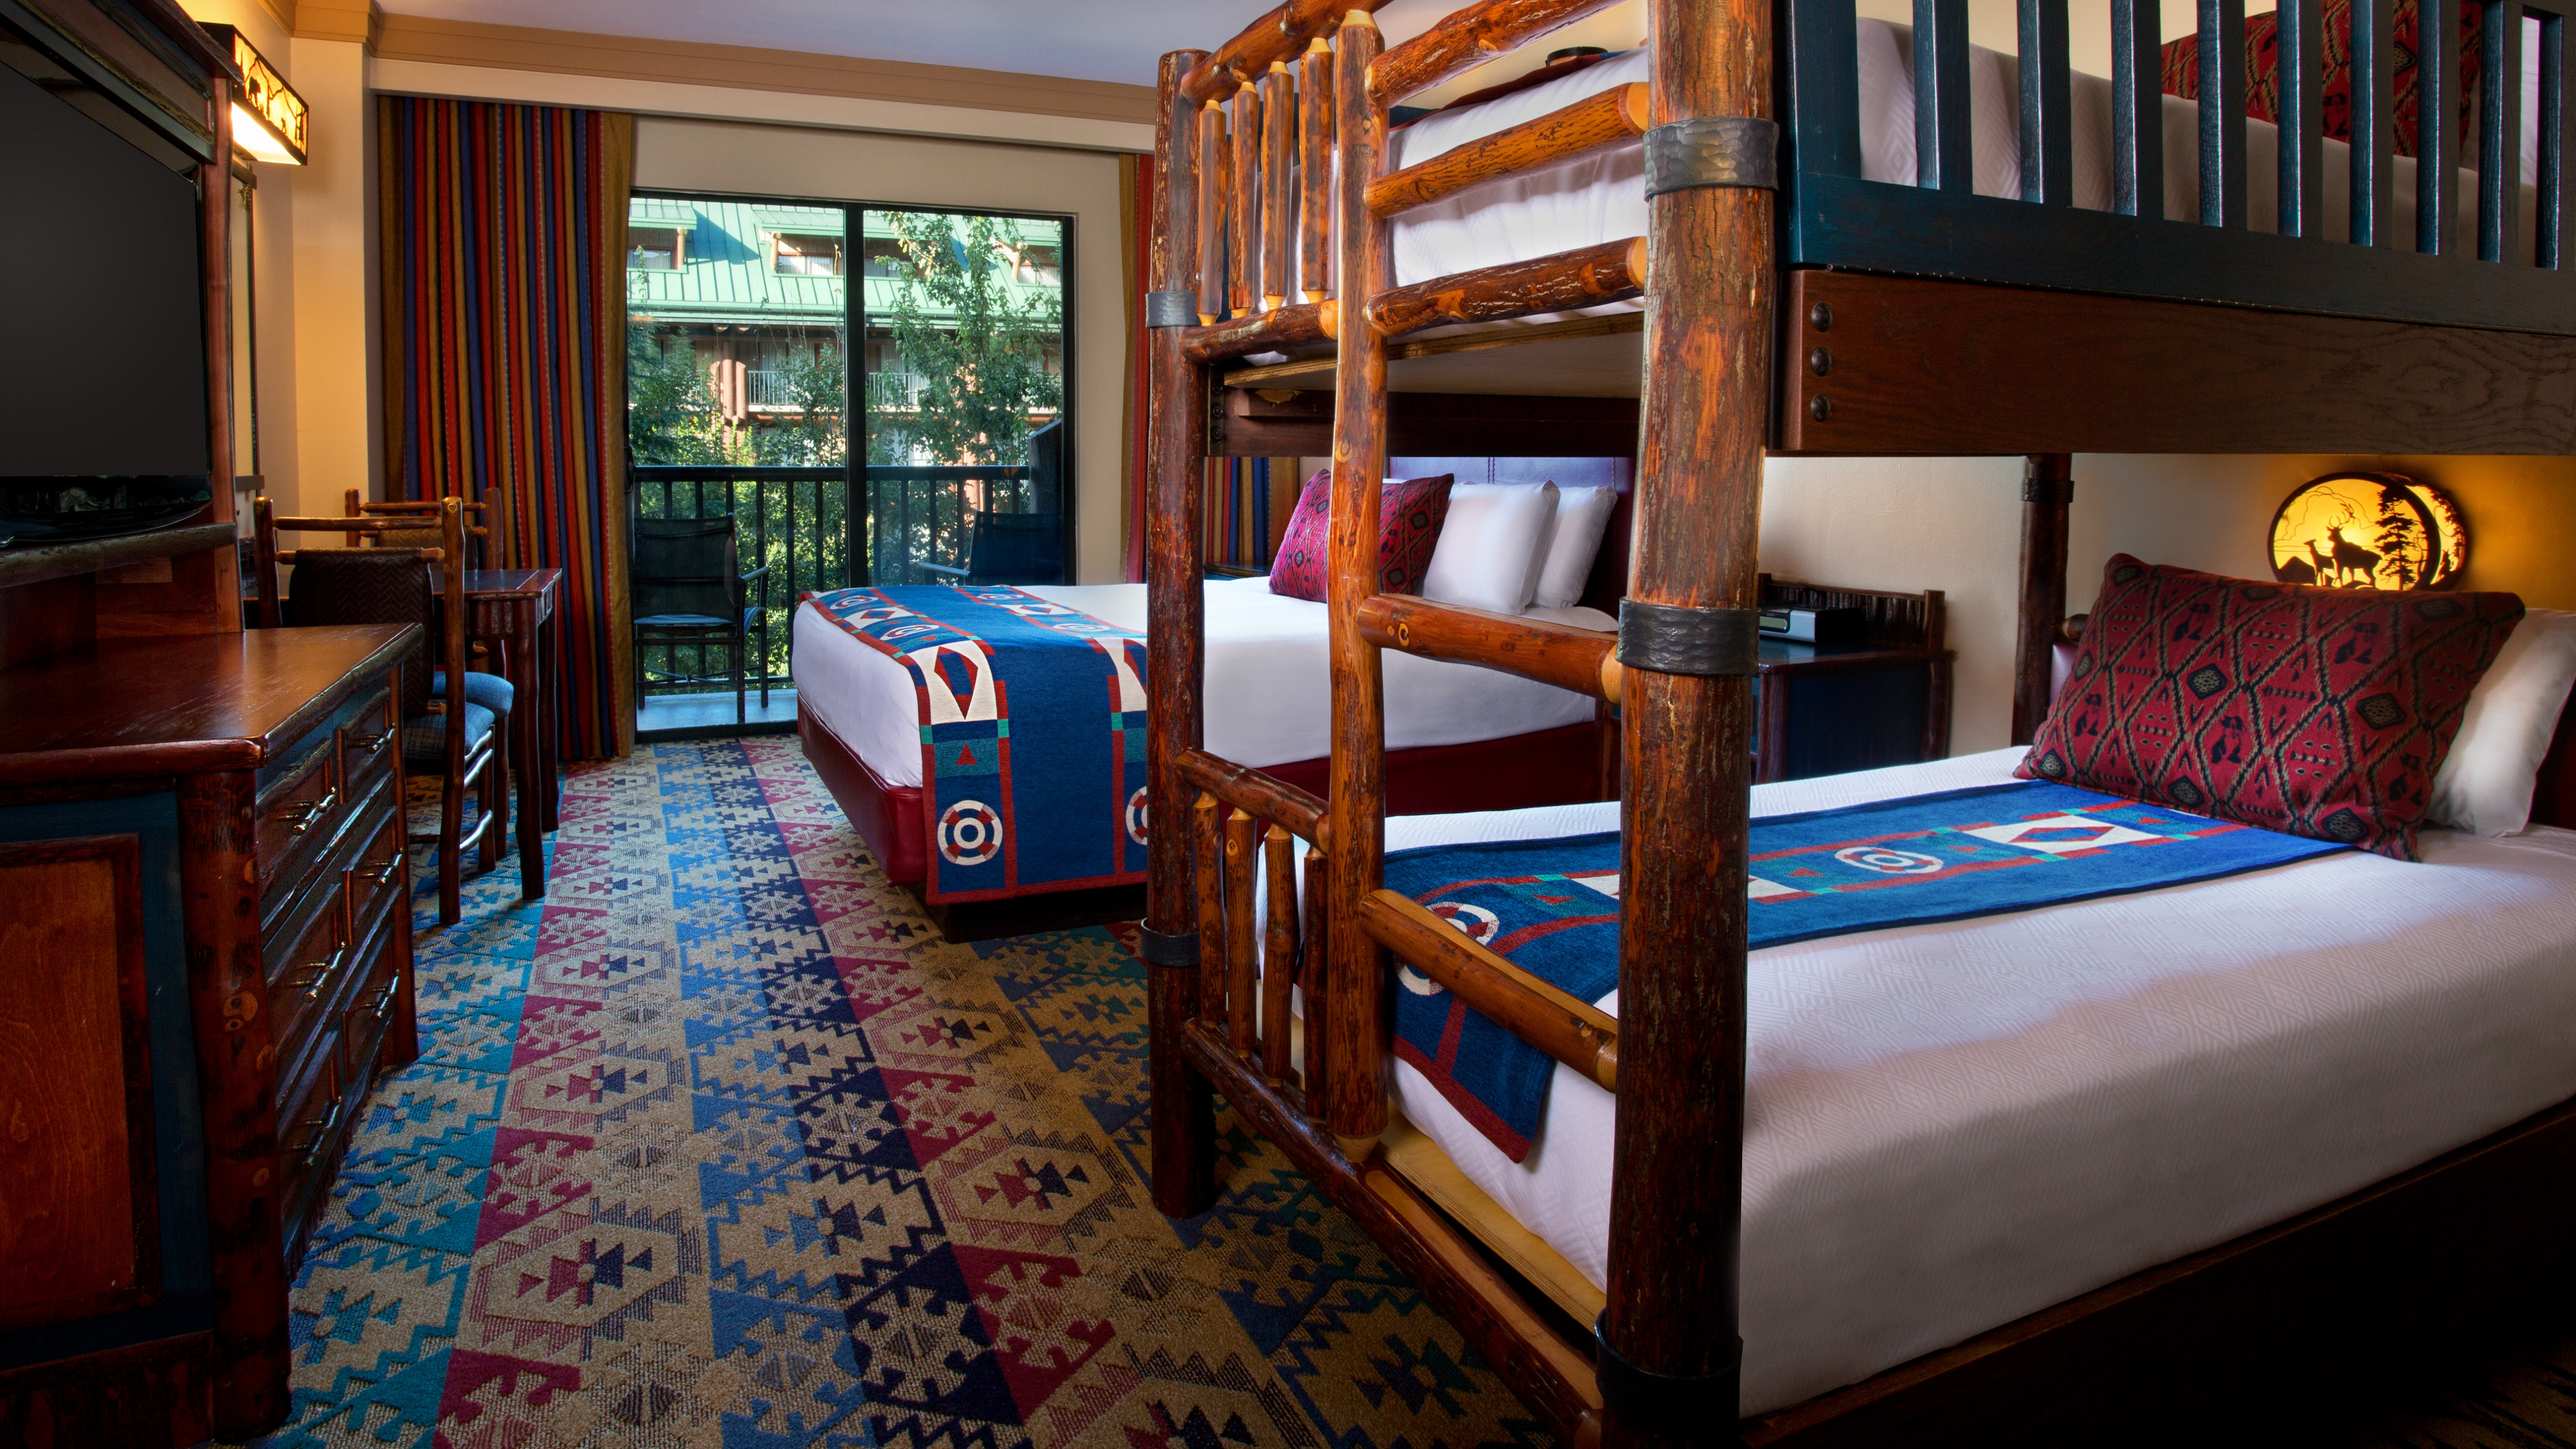 Courtyard View Bunk Bed Themeparkbeds Com